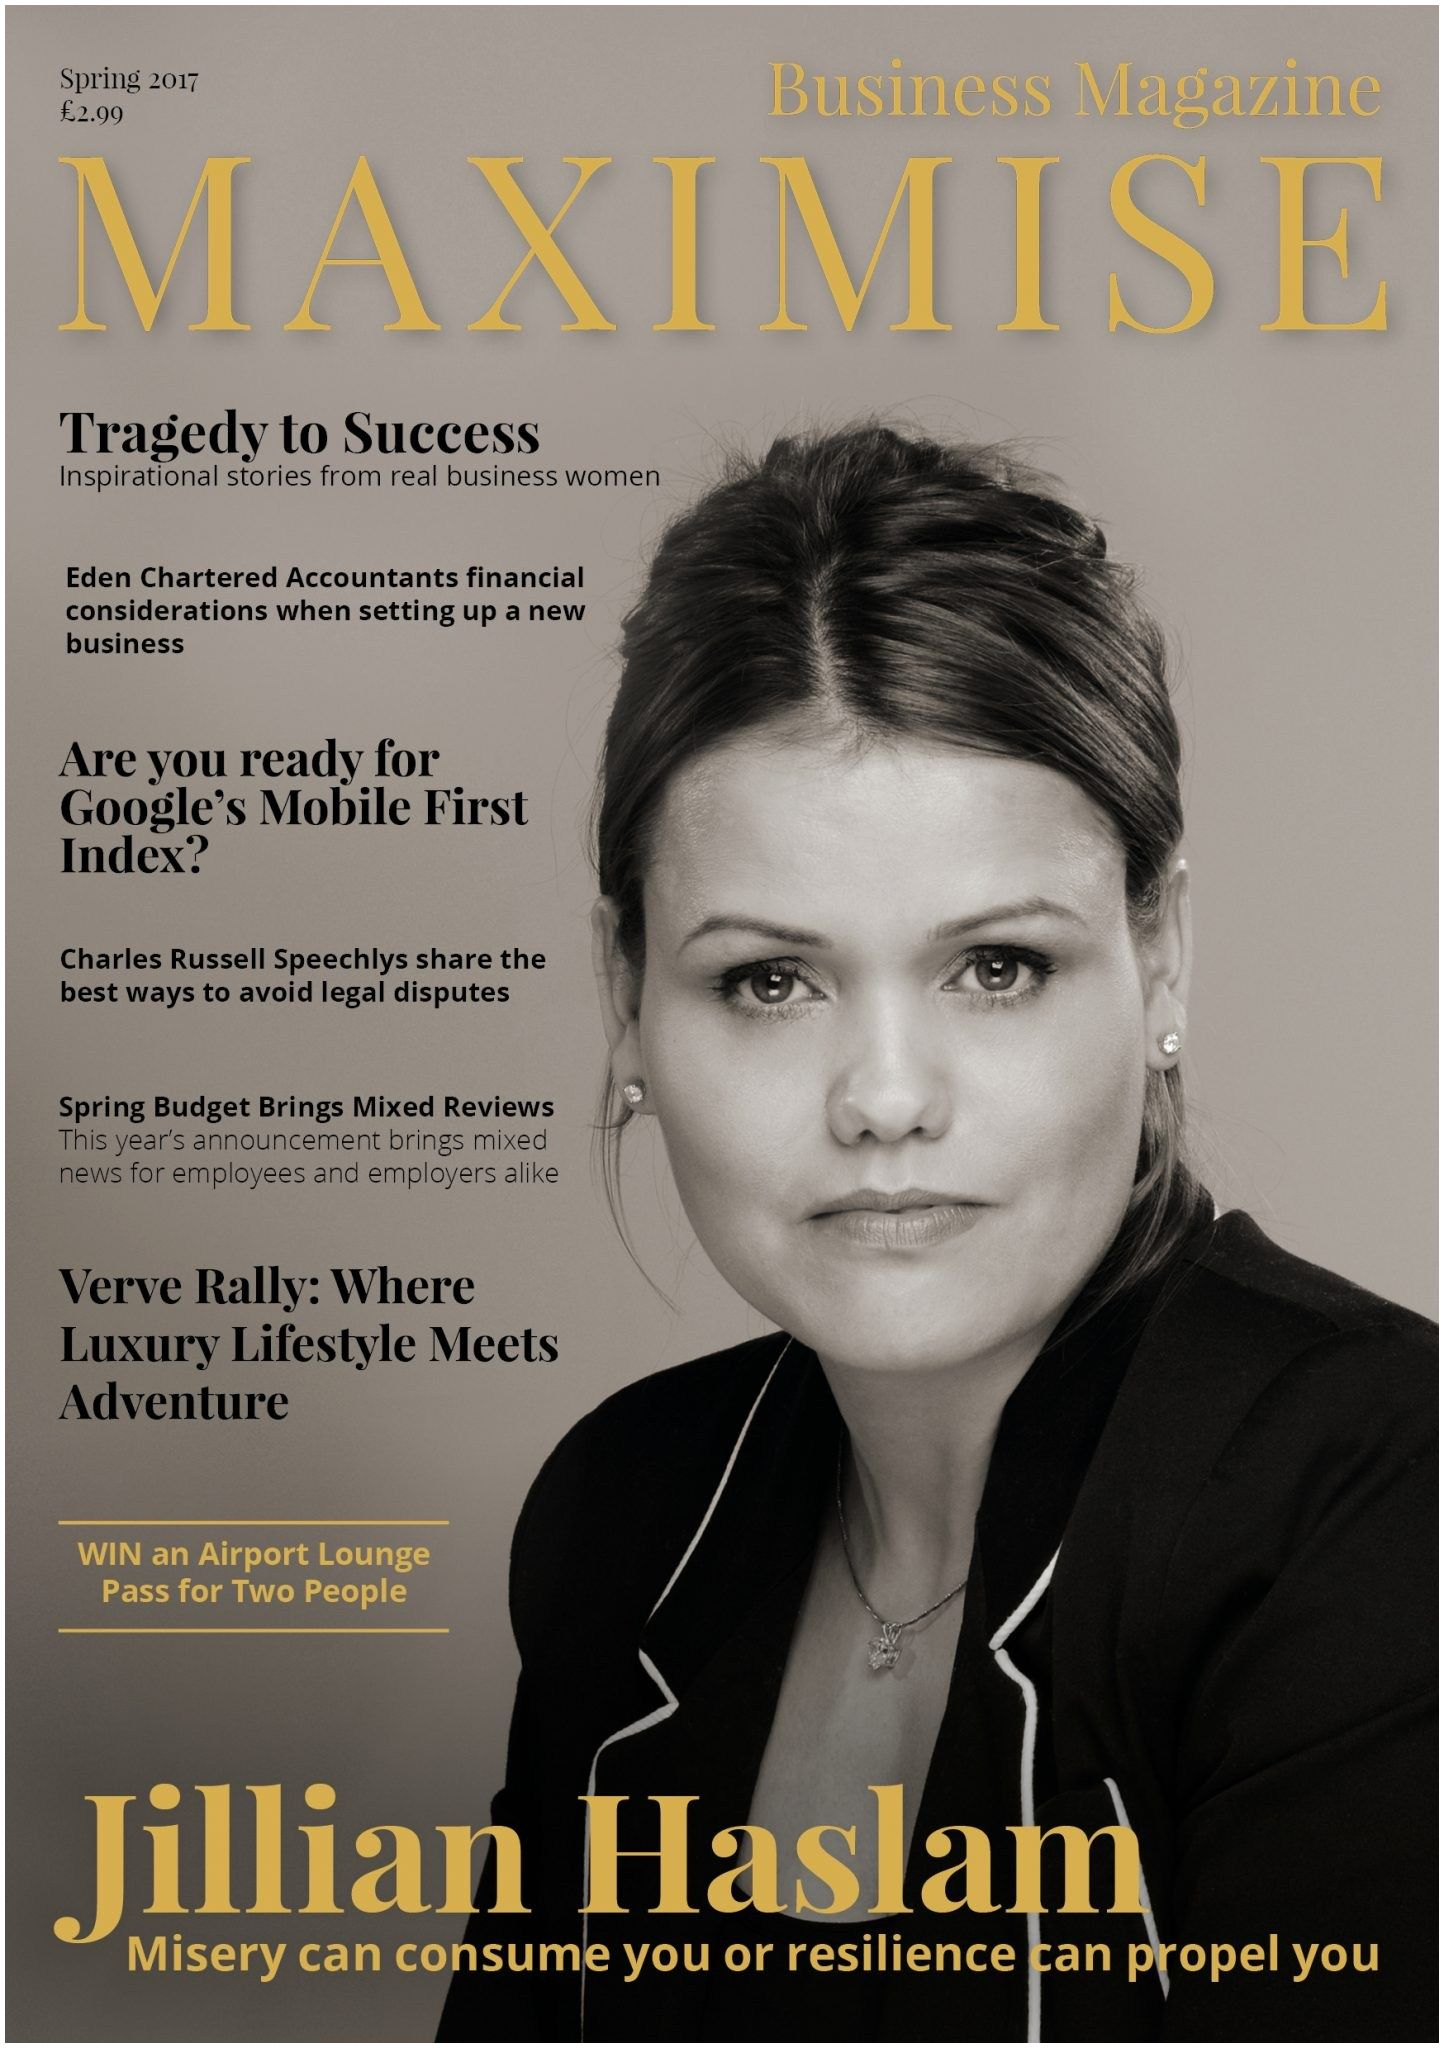 pregnancy magazines celebrating three years maximise women s business magazine of pregnancy magazines 1